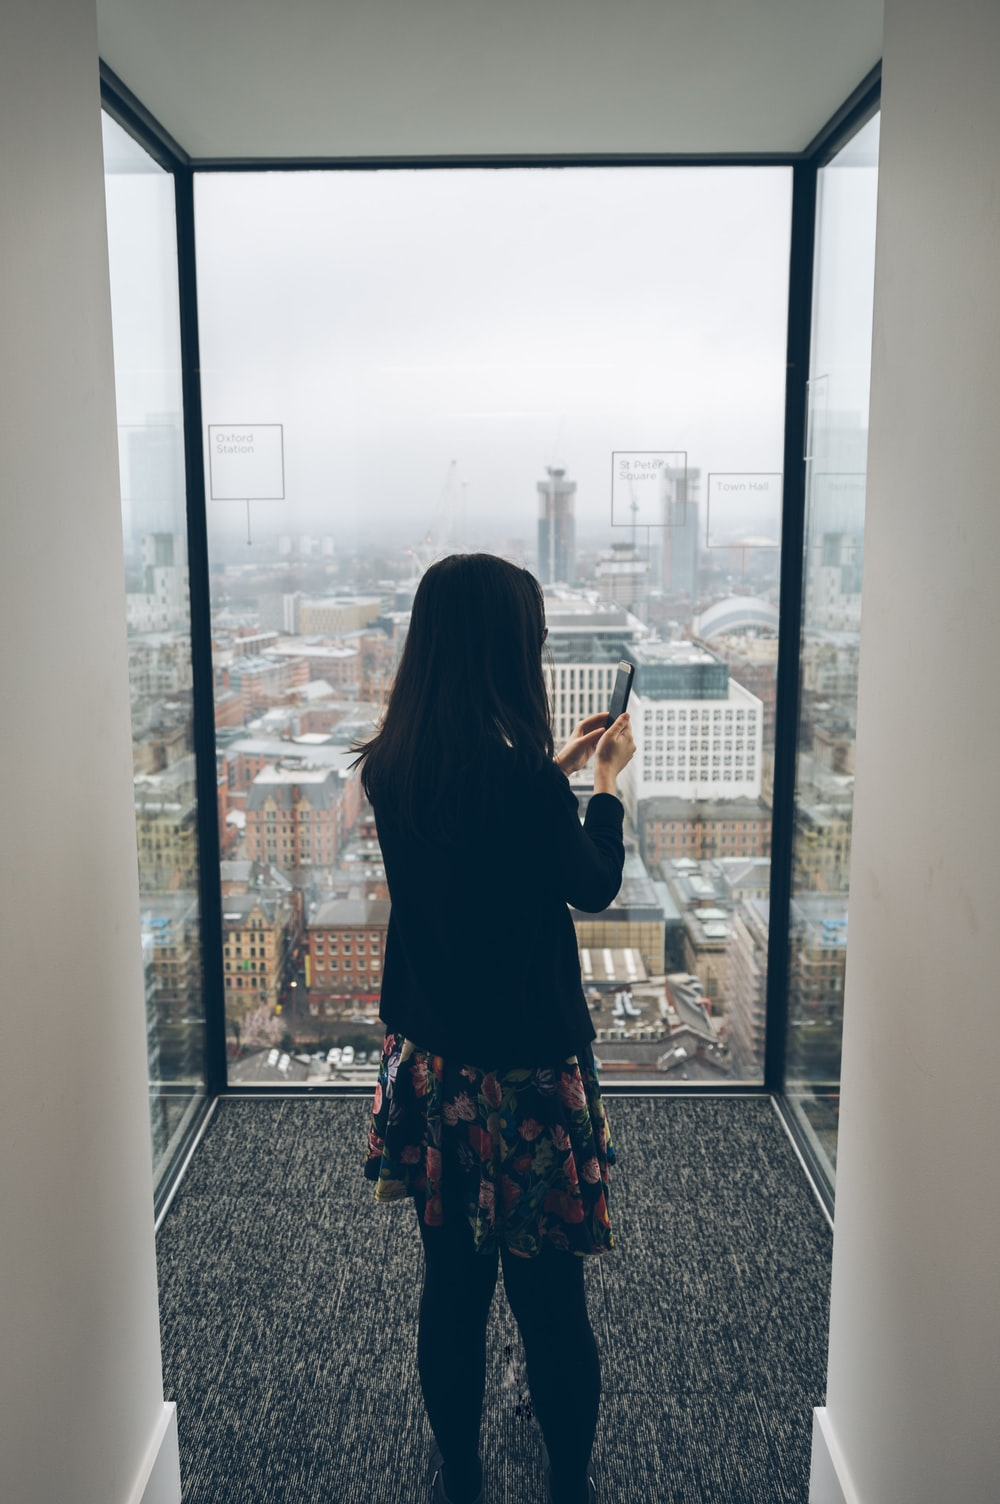 woman holding smartphone standing in front of window